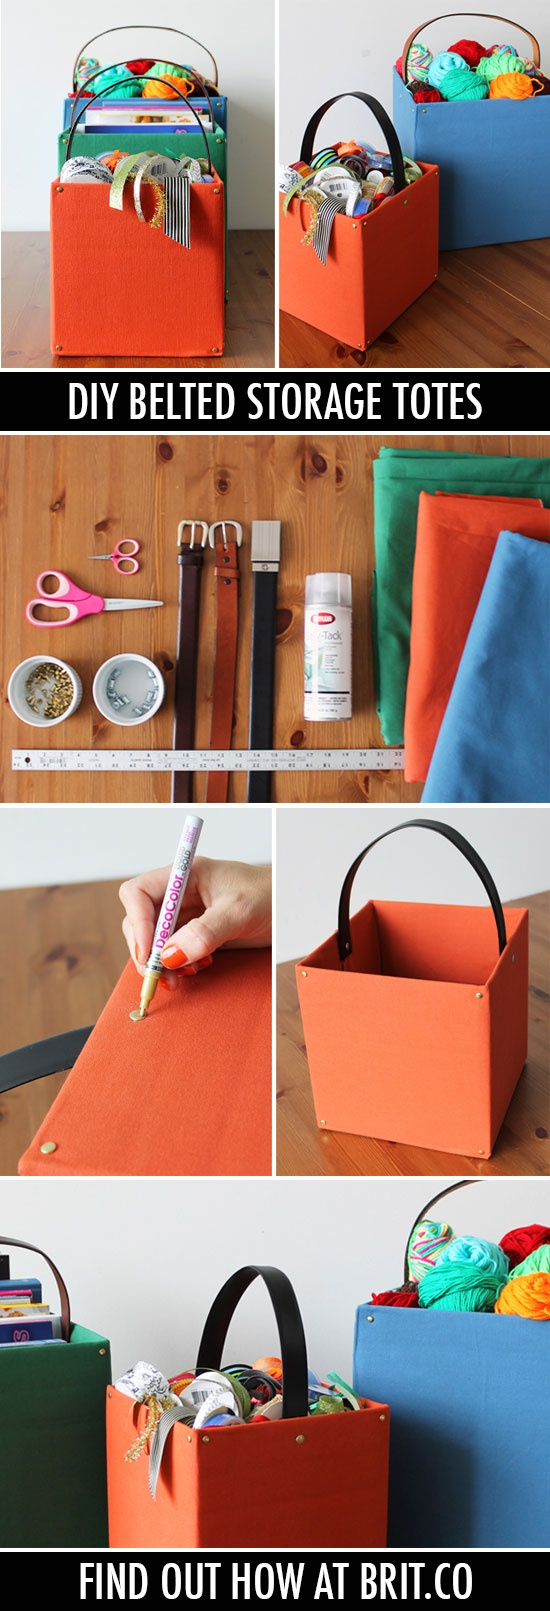 Get Organized with DIY Belted Storage Totes